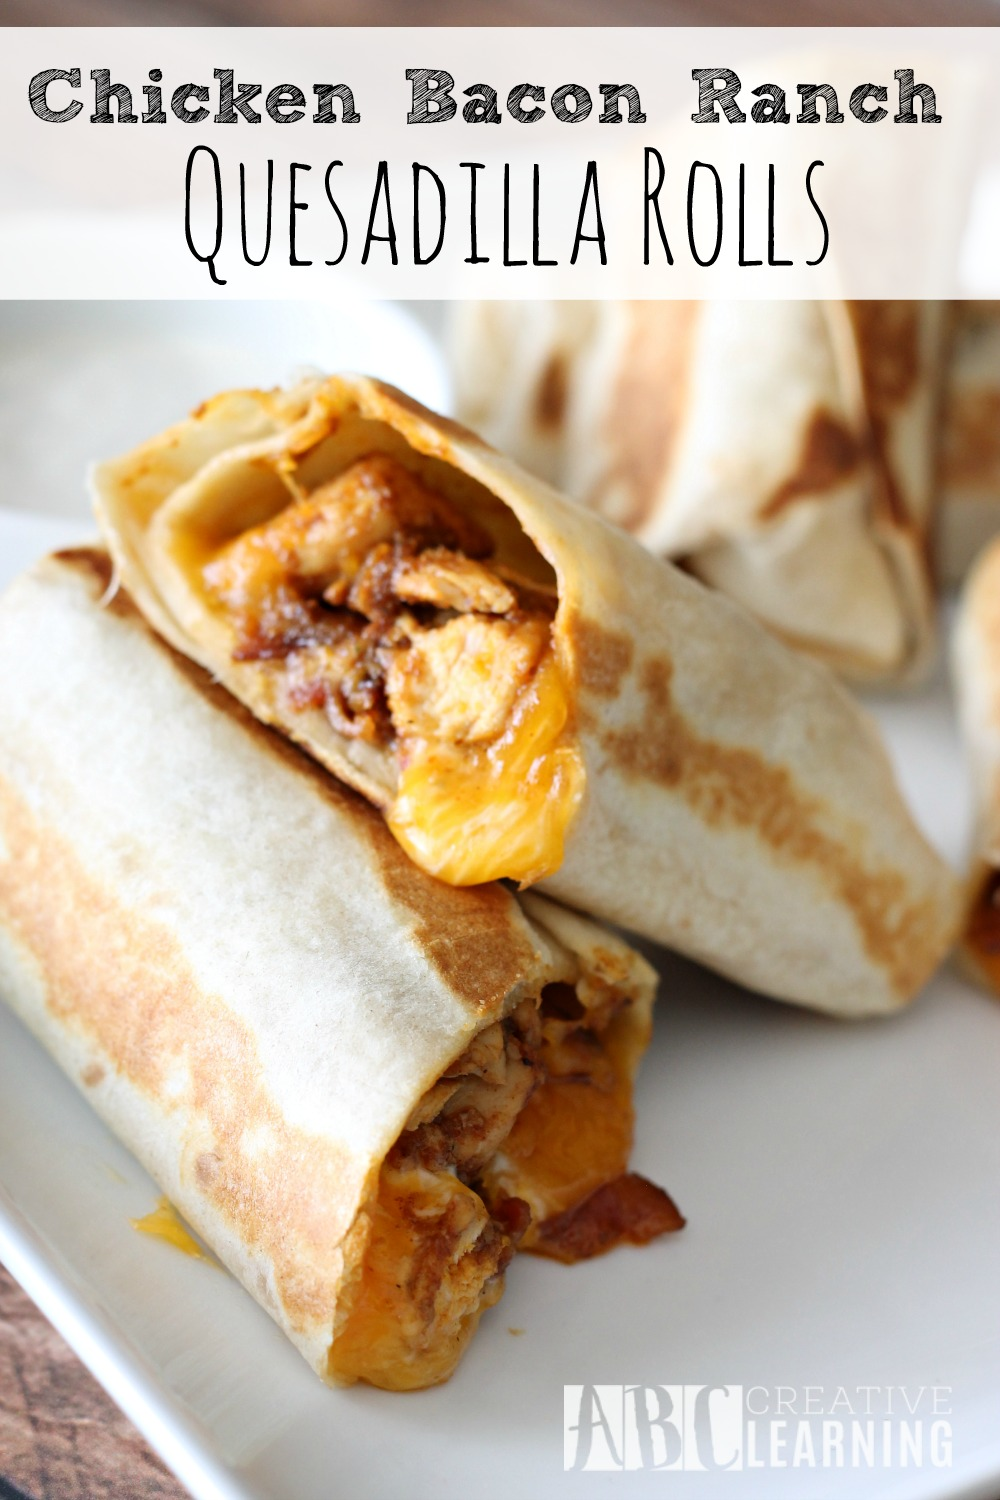 Chicken Bacon Ranch Quesadilla Rolls